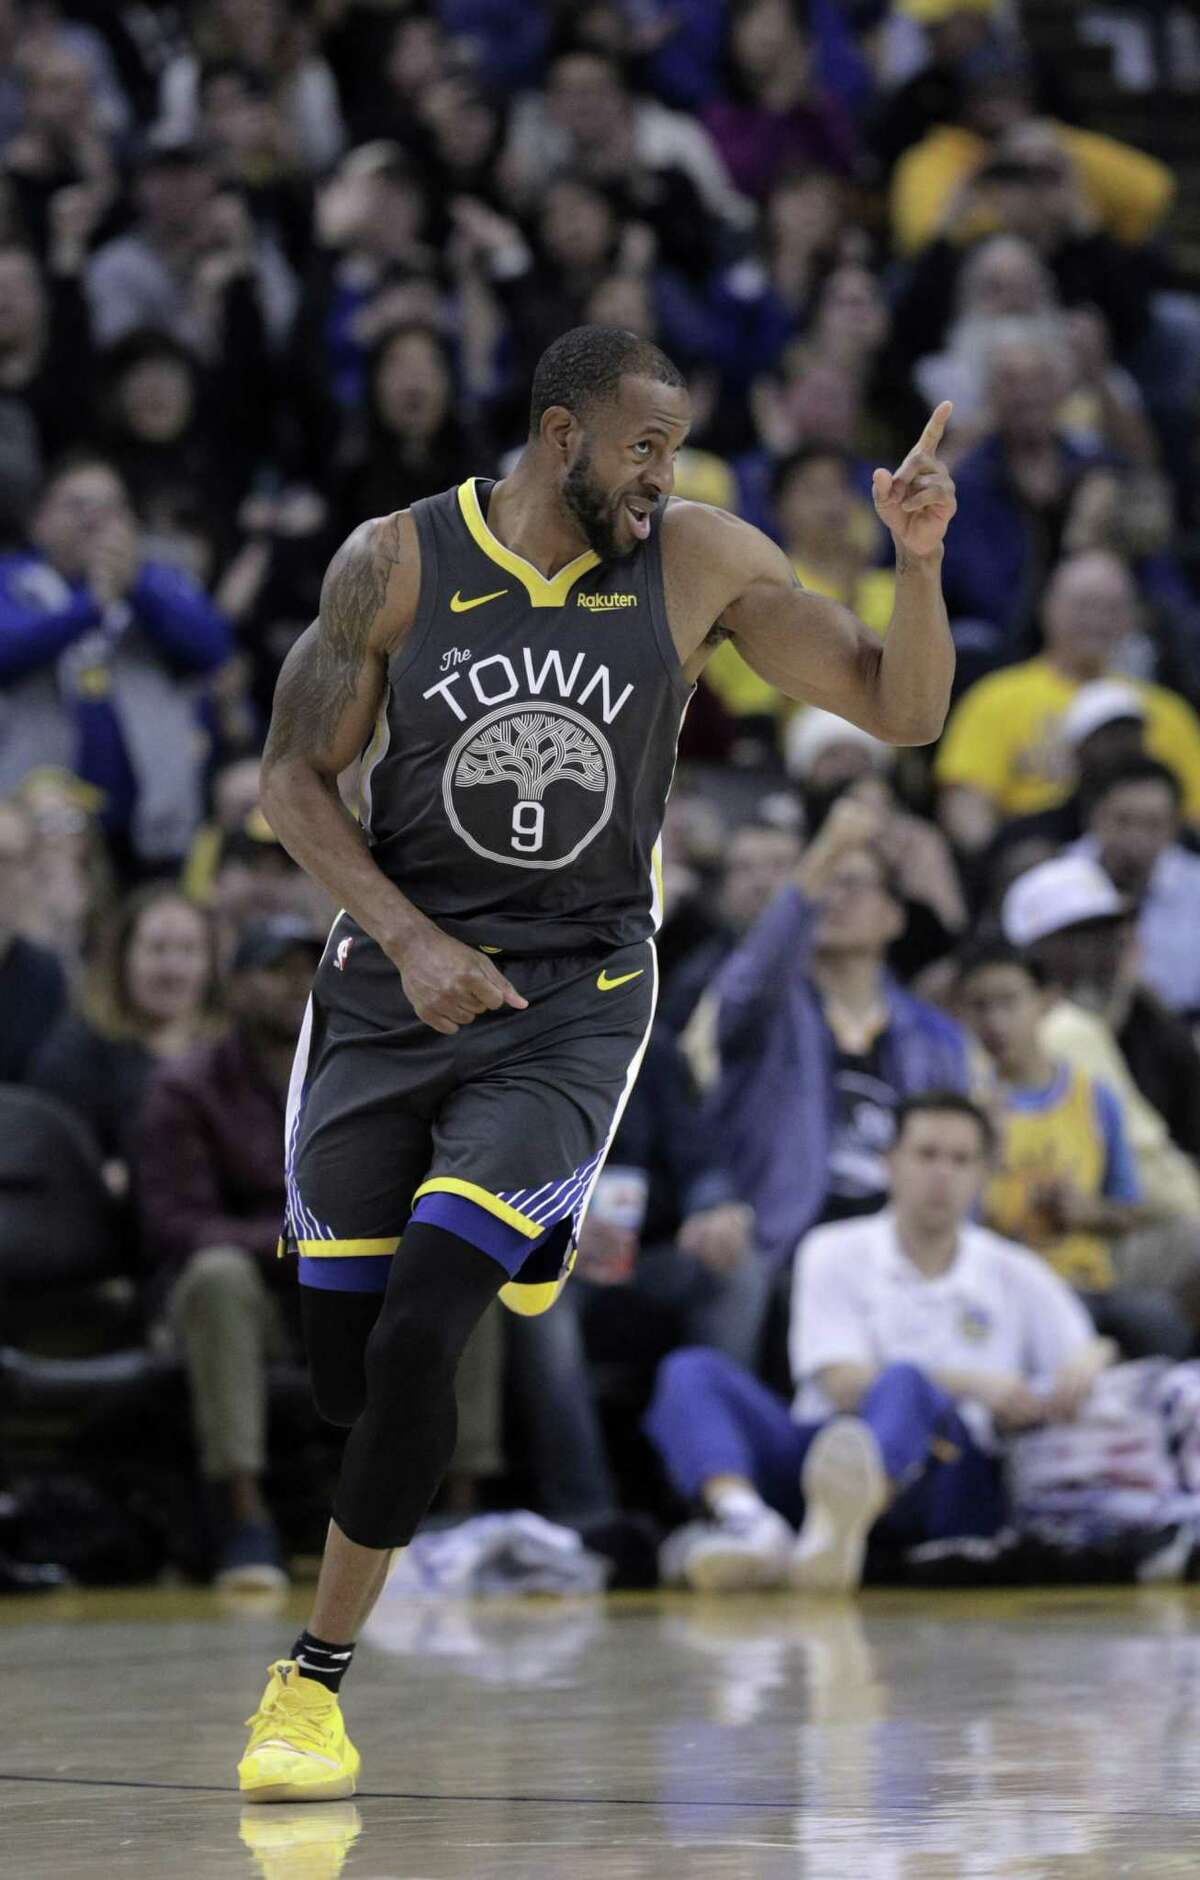 Andre Iguodala (9) gestures after dunking a shot in the first half as the Golden State Warriors played the San Antonio Spurs at Oracle Arena in Oakland, Calif., on Wednesday, February 6, 2019.